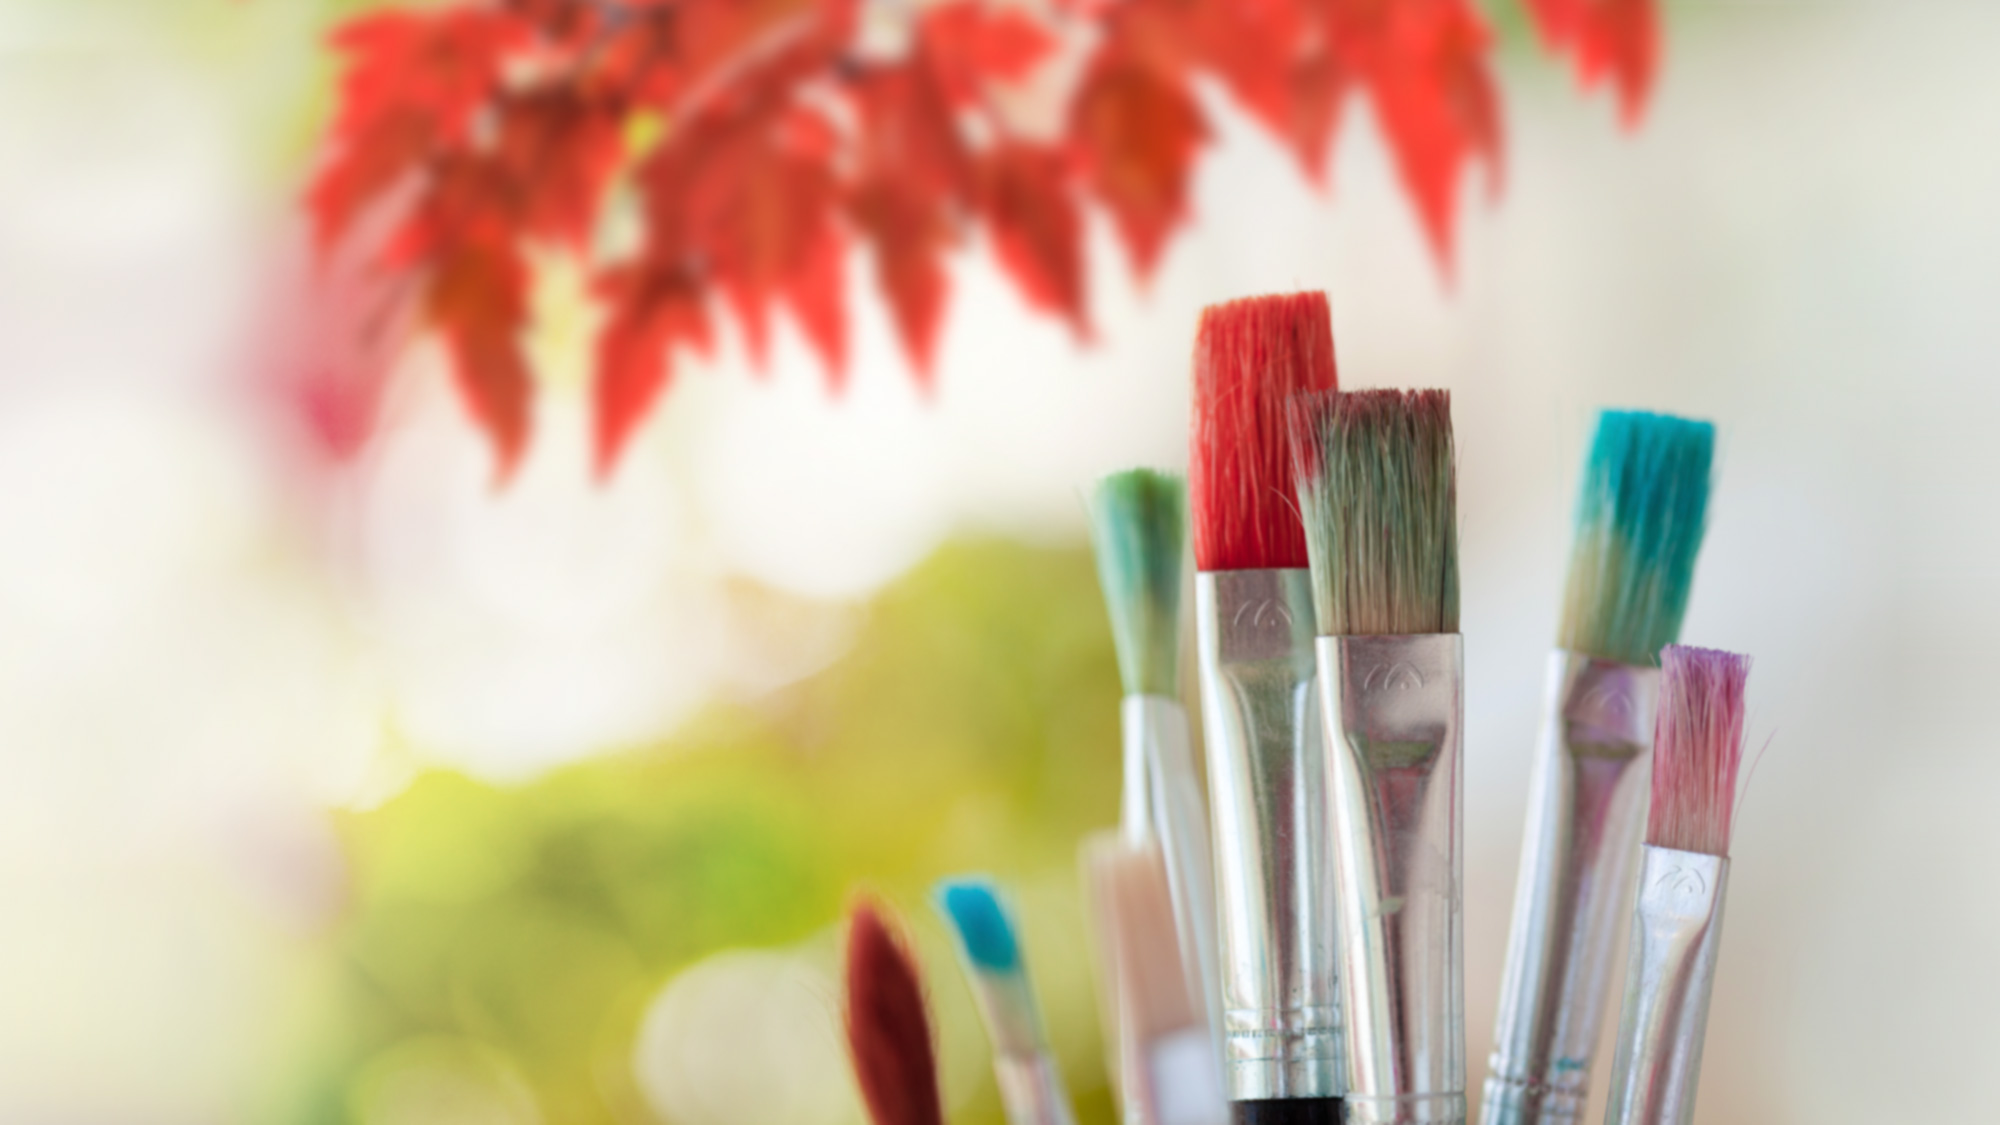 Paint brushes with our logo, maple tree in background